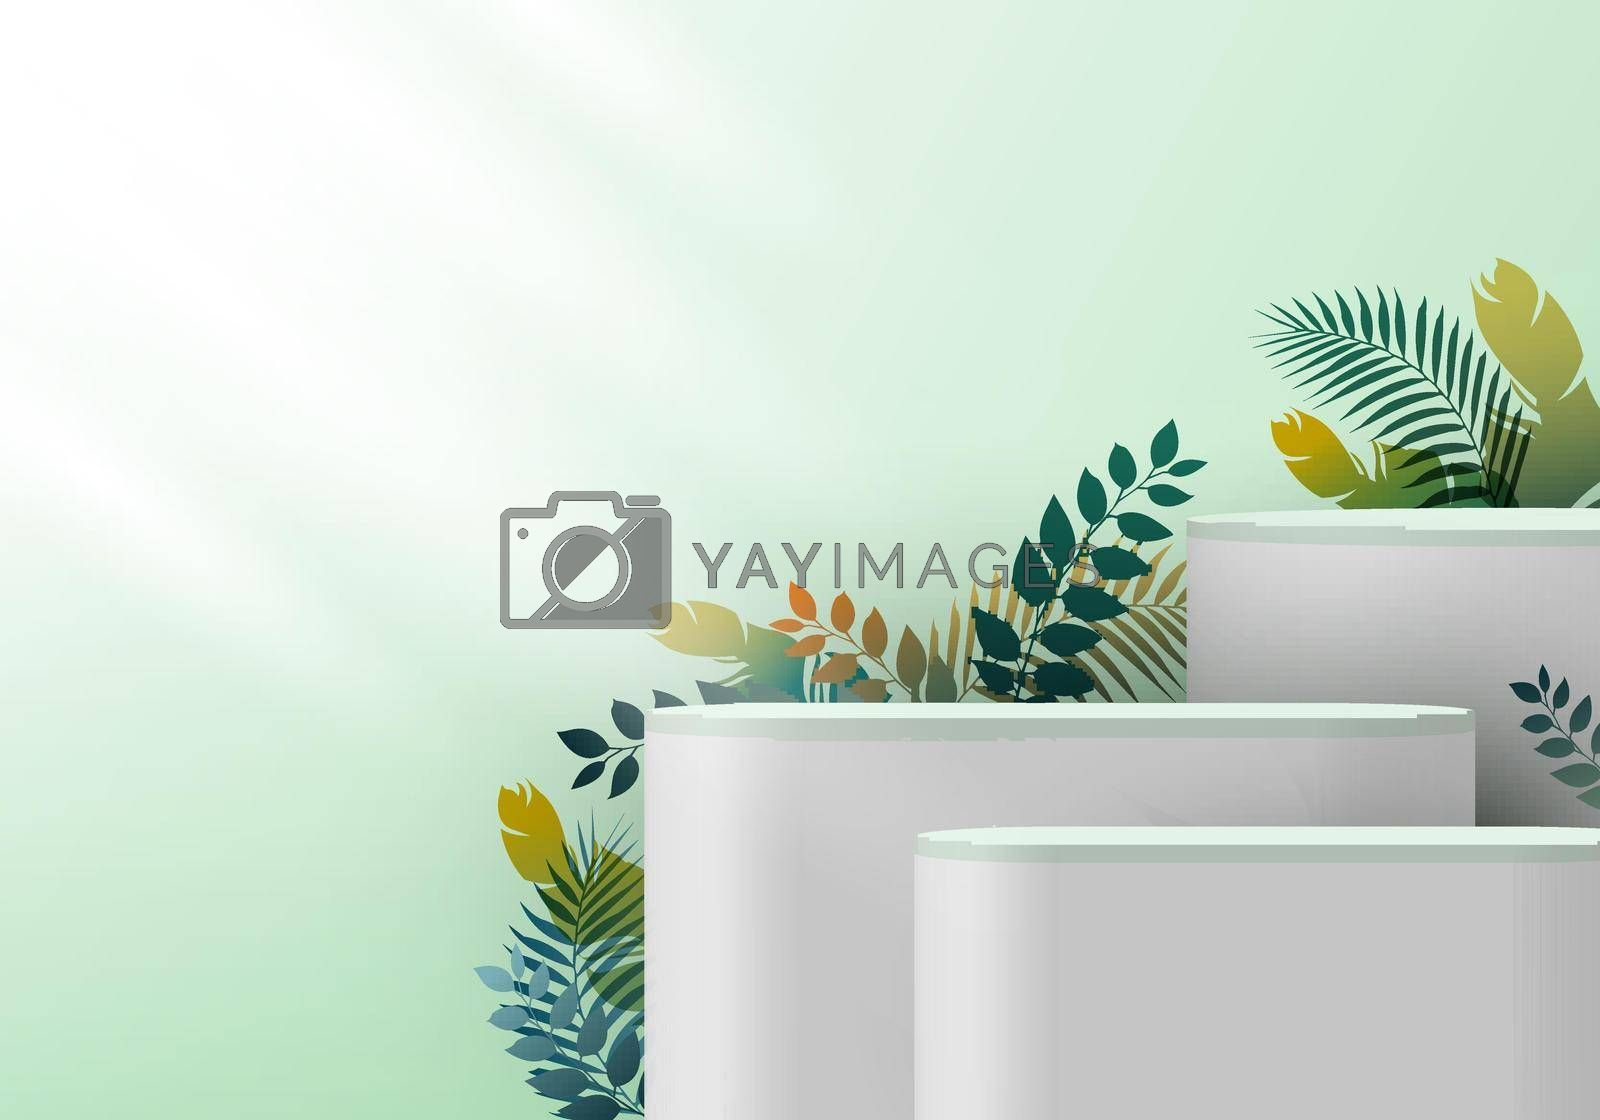 Royalty free image of 3D realistic white pedestal on green mint backdrop for product display with tropical leaves by phochi